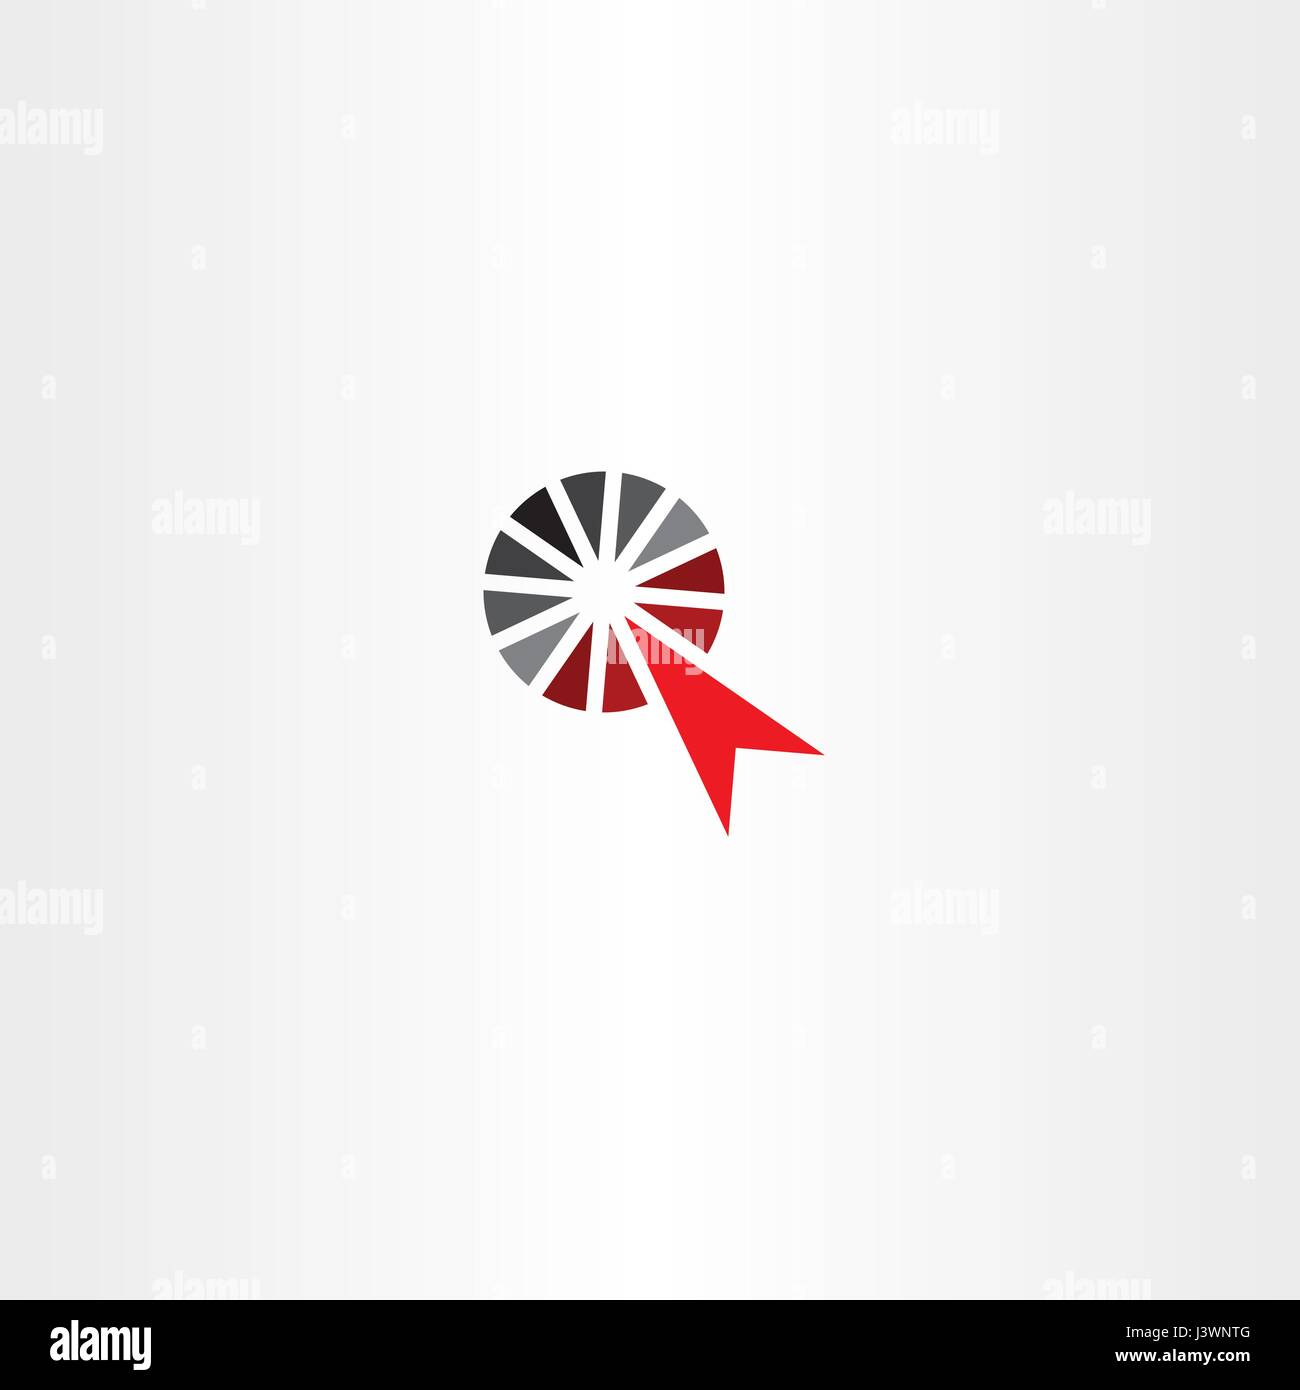 Point arrow icon click symbol vector target stock vector art point arrow icon click symbol vector target buycottarizona Image collections